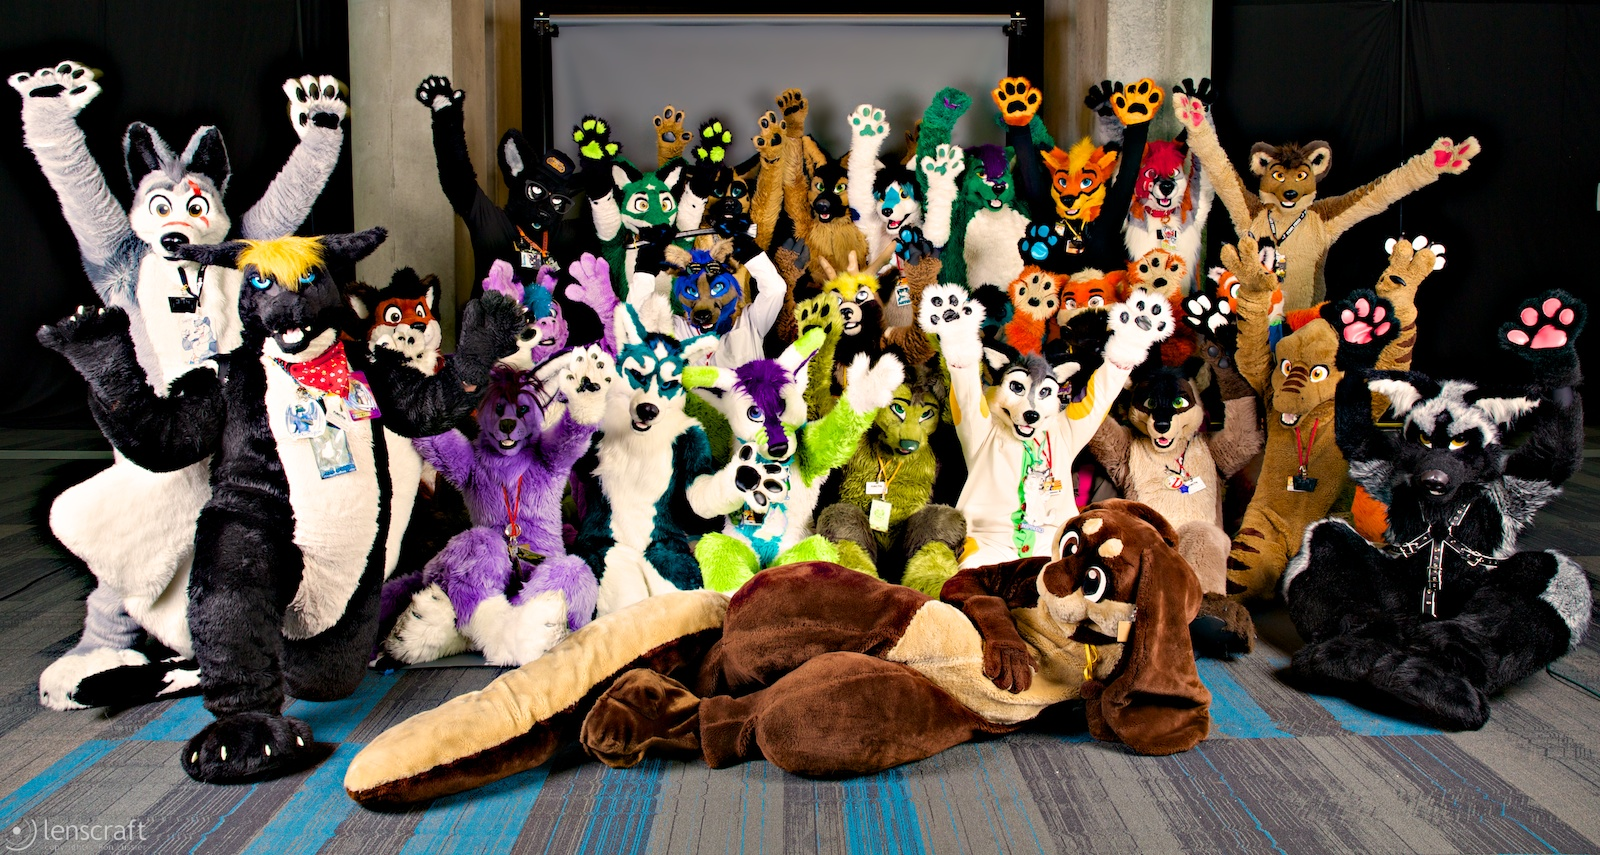 On the Party Floor at the Furry Con